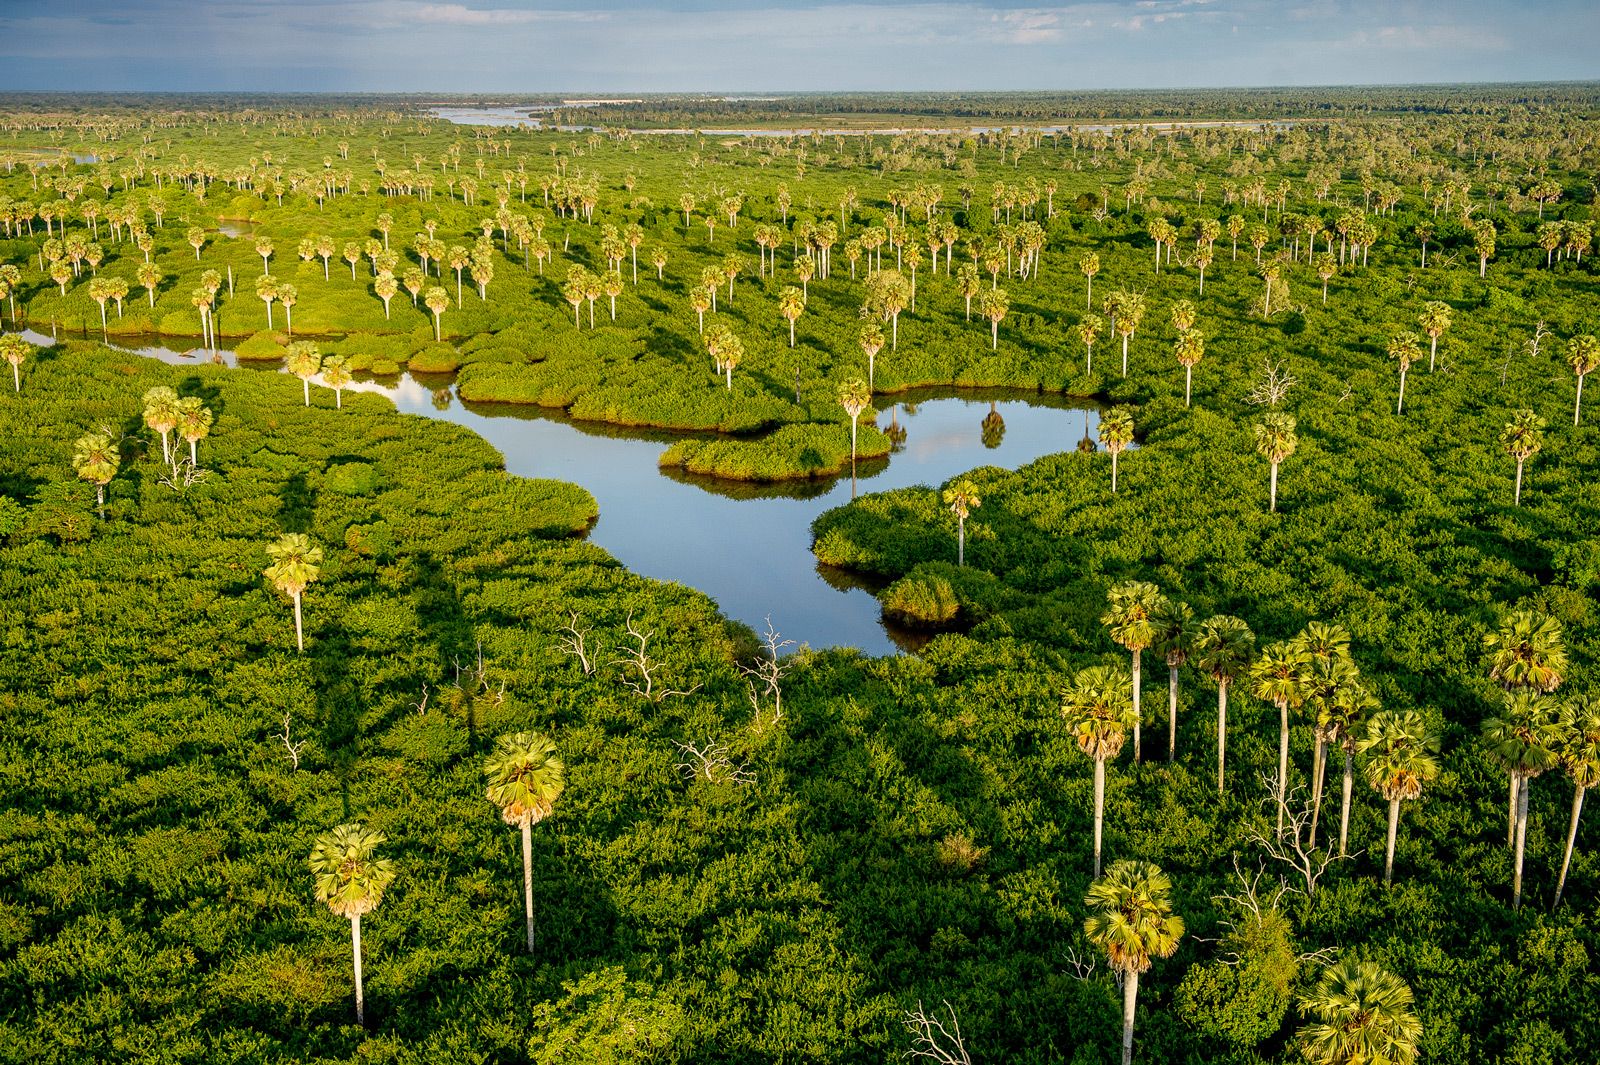 Stately Borassus palms rise from the swamps between the Rufiji River and the northern lakes.